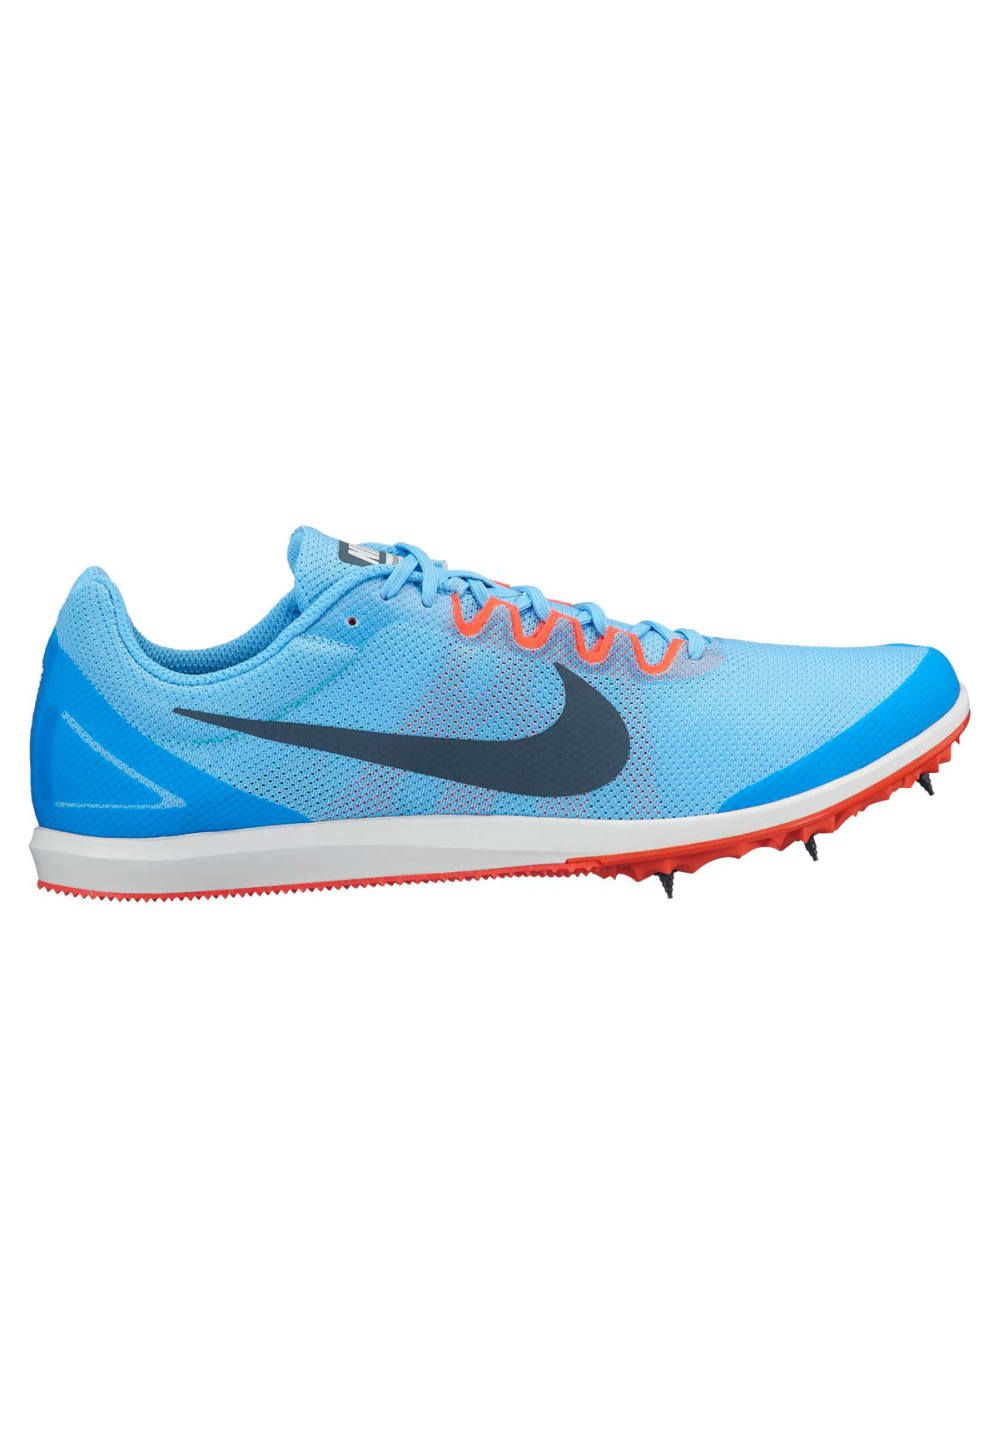 huge discount 5576d b5f6e Nike Zoom Rival D 10 Track Spike - Chaussures pointes pour Homme - Bleu